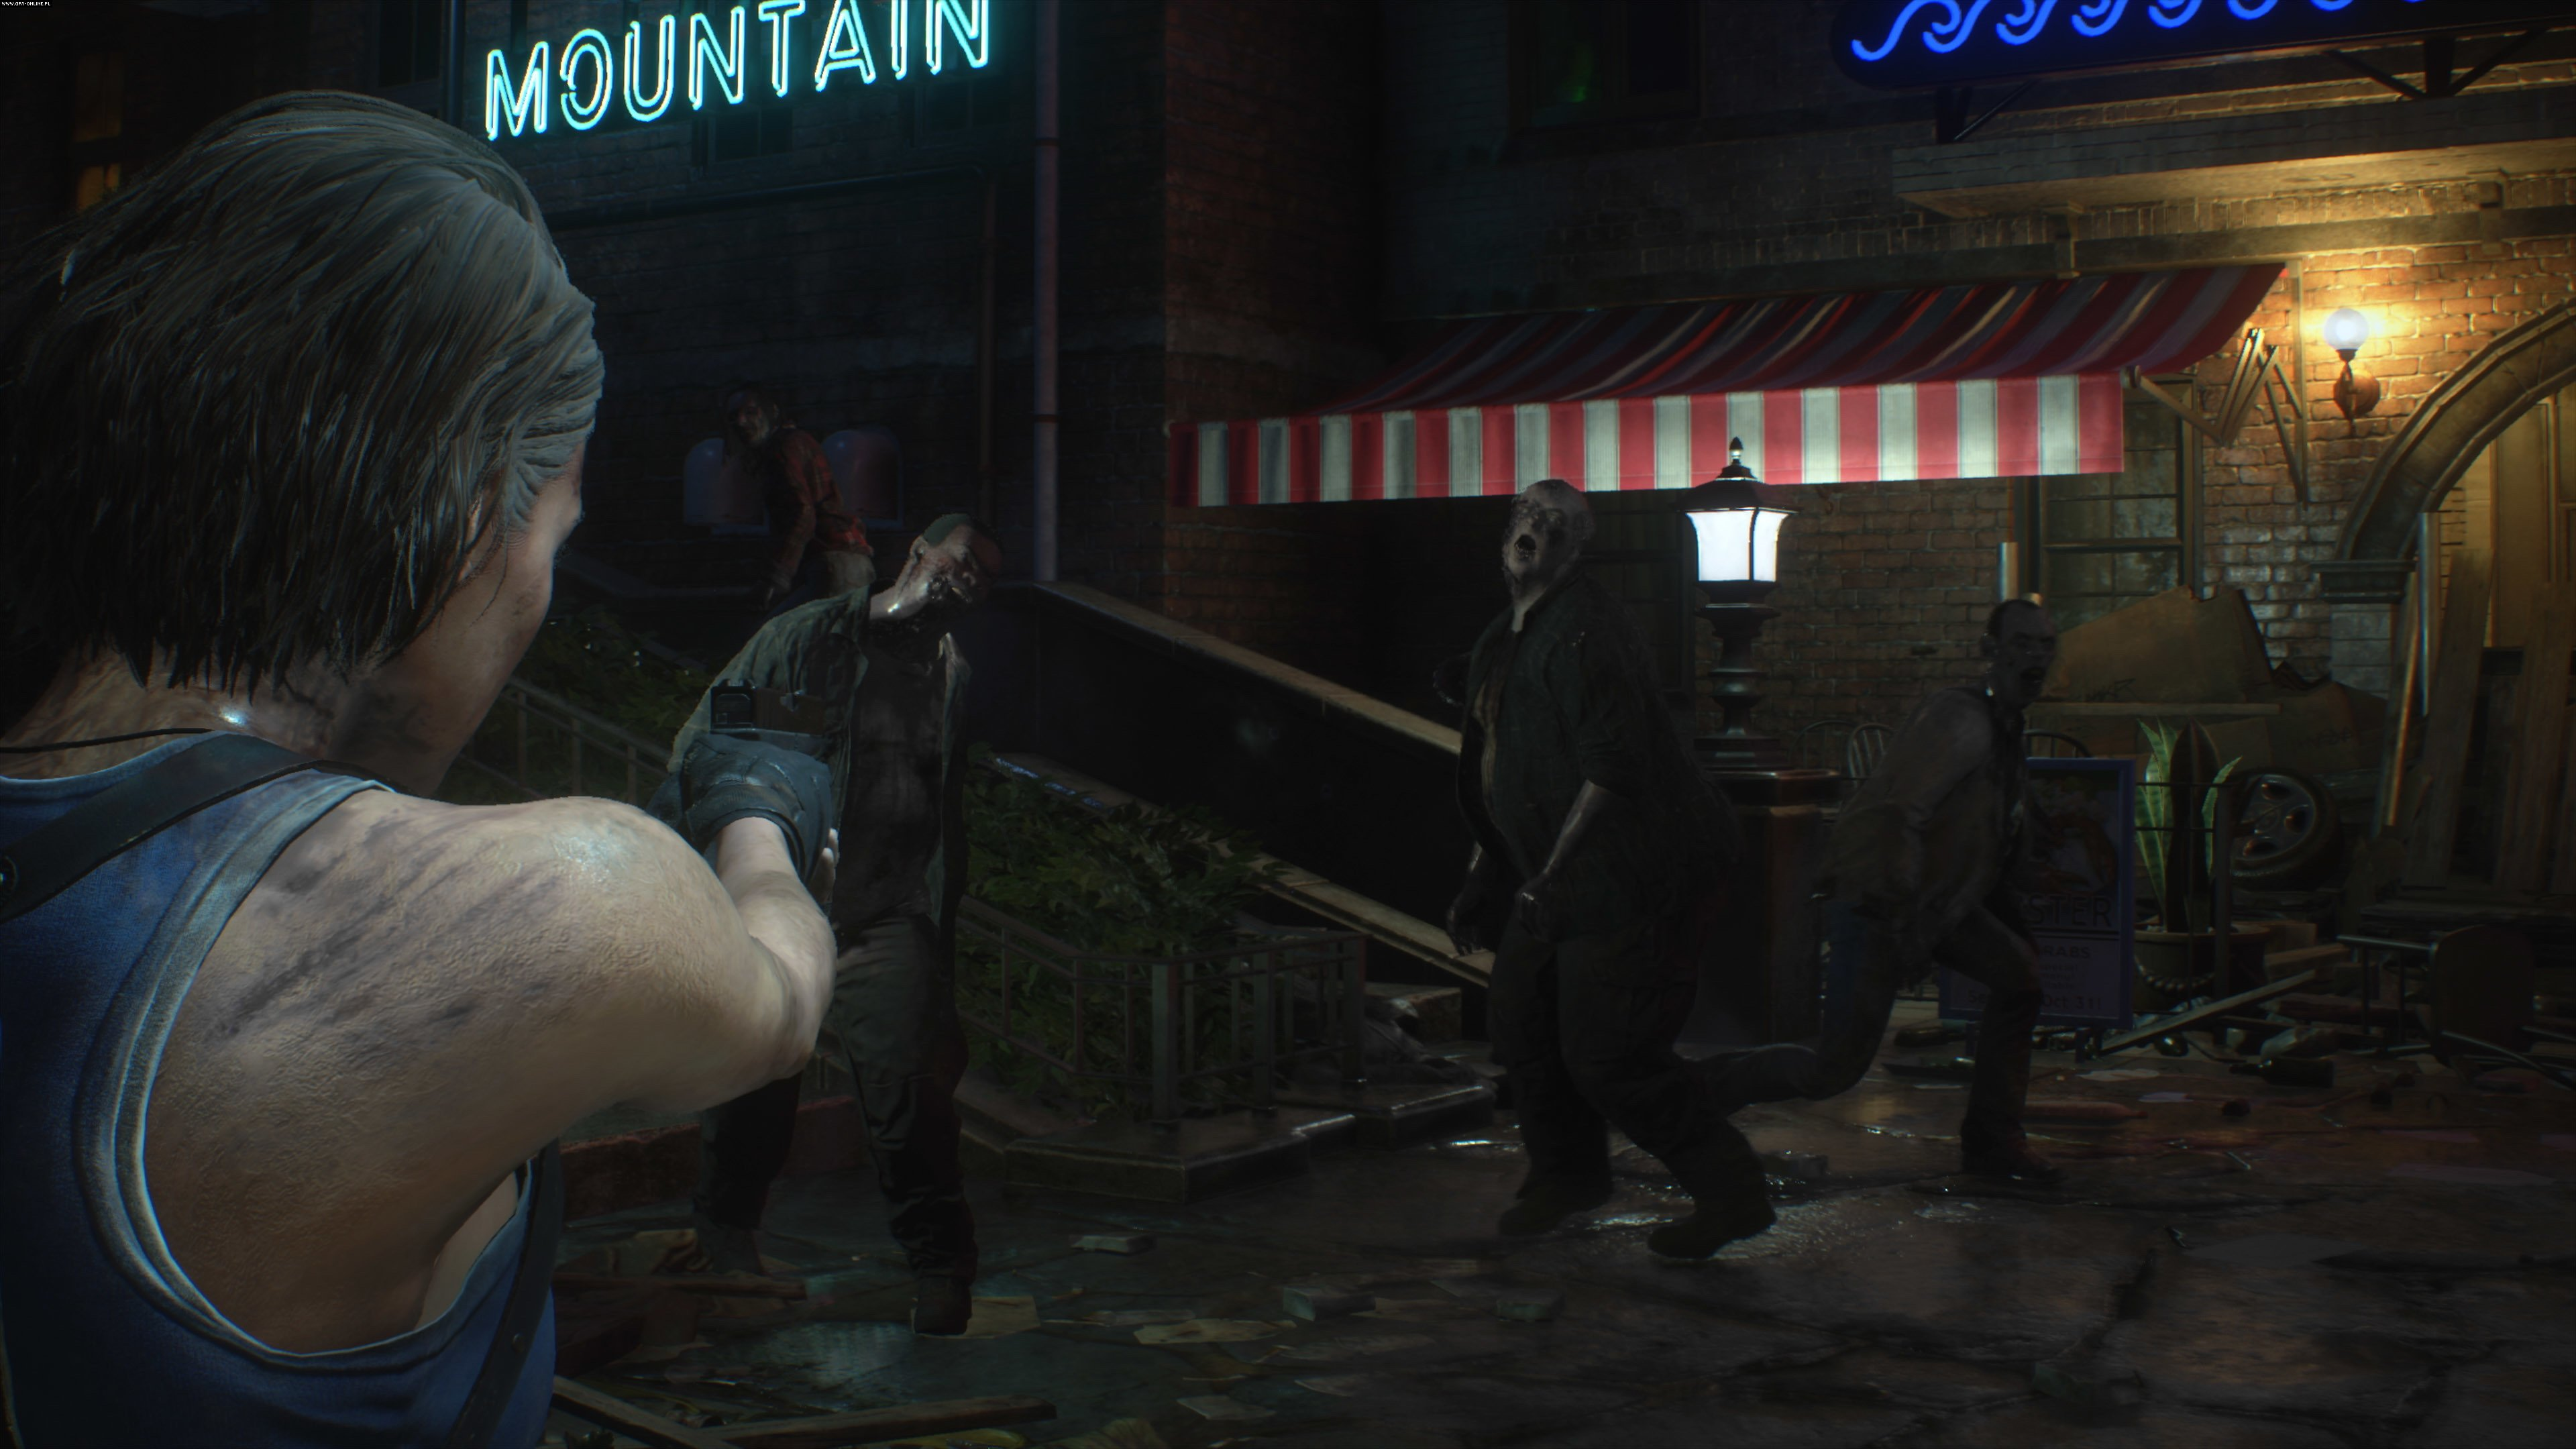 Resident Evil 3 PC, PS4, XONE Games Image 4/59, Capcom